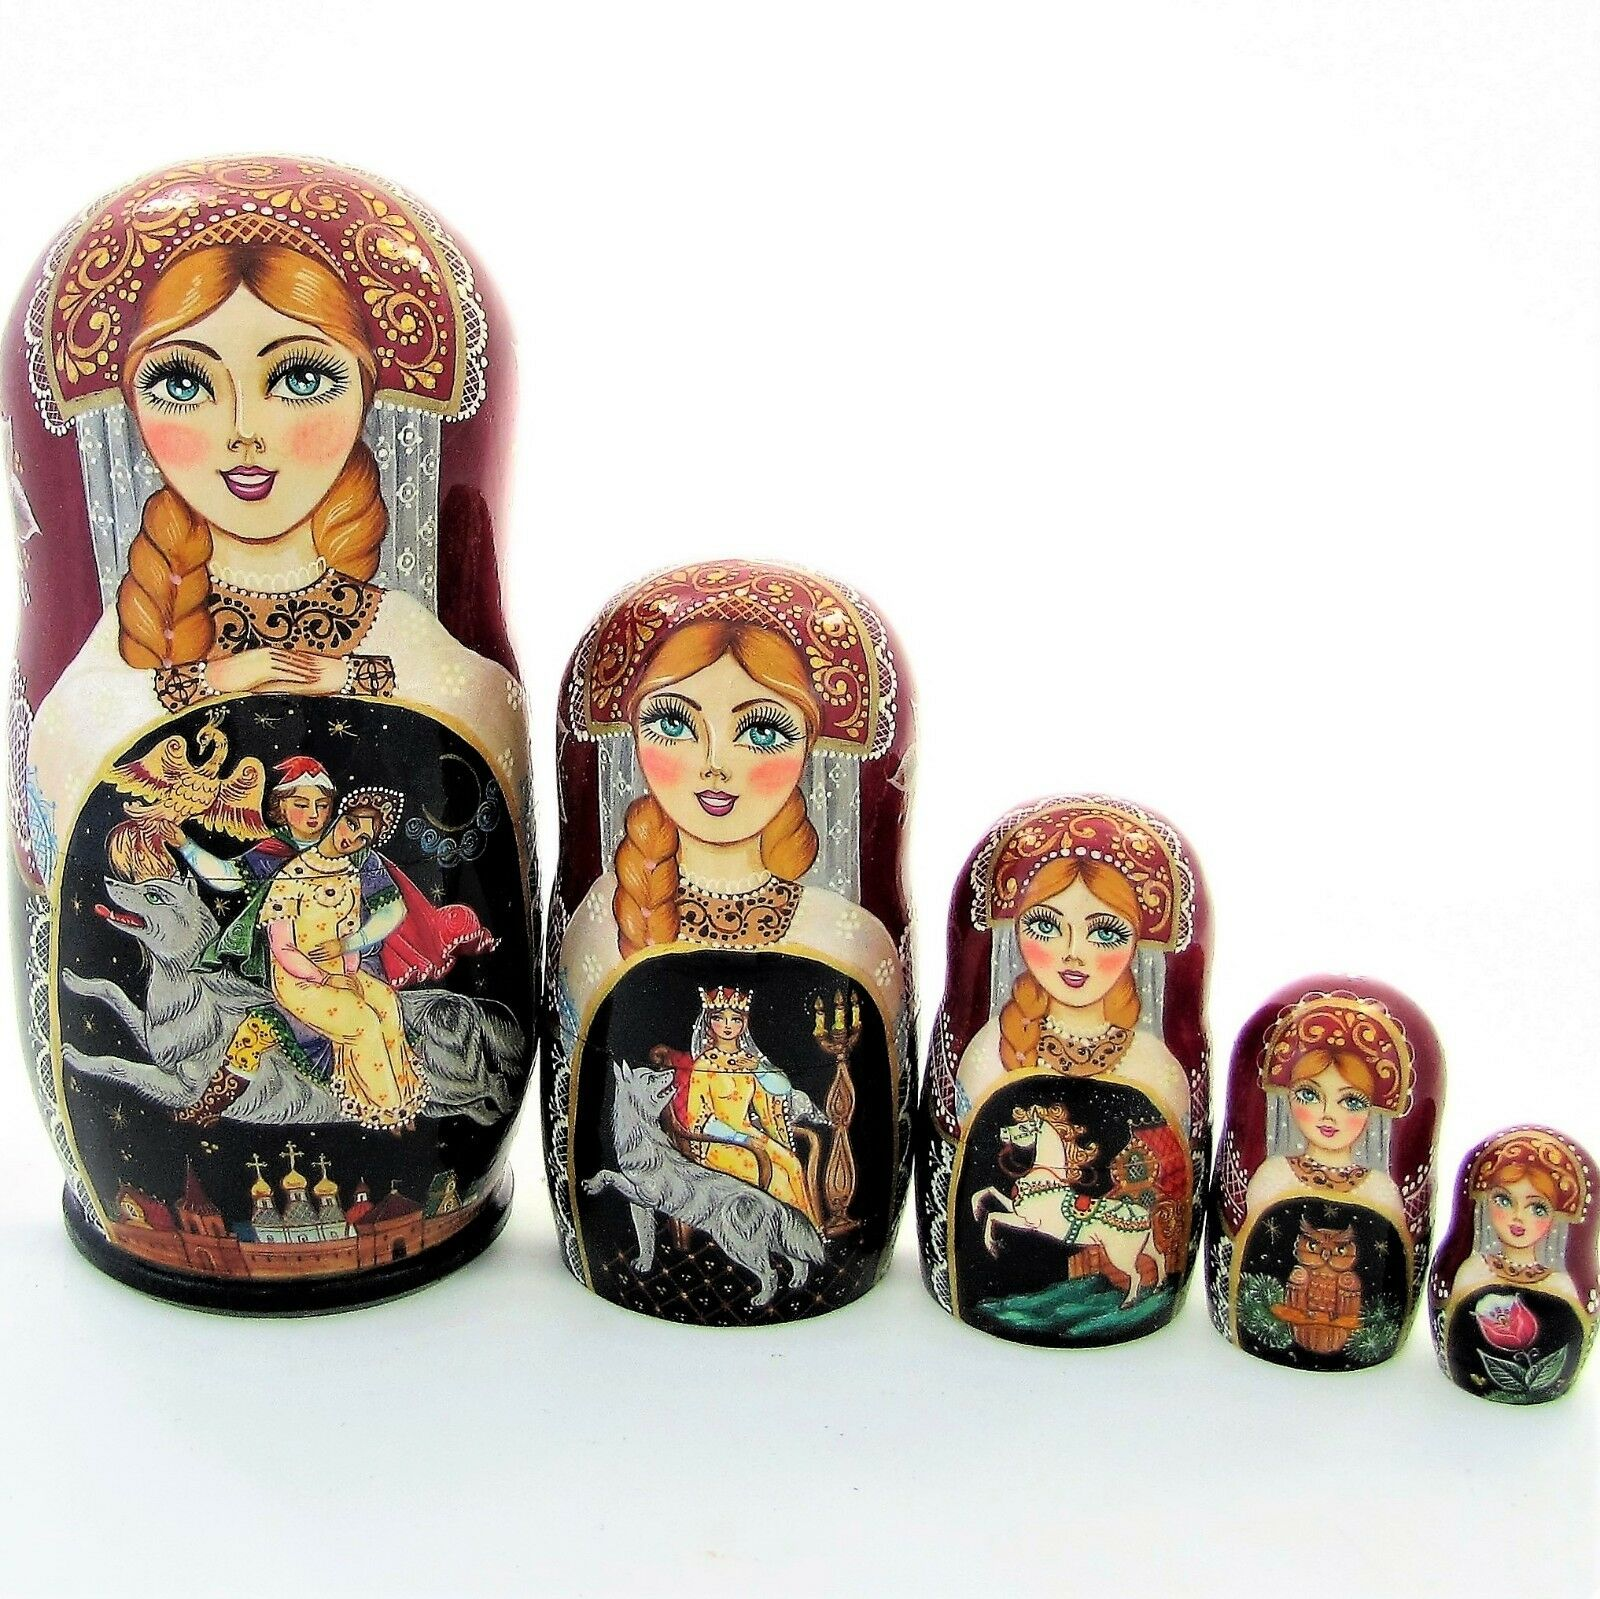 5 Poupées russes H19cm exclusive Palekh peint main signé Matriochka Matrioshka